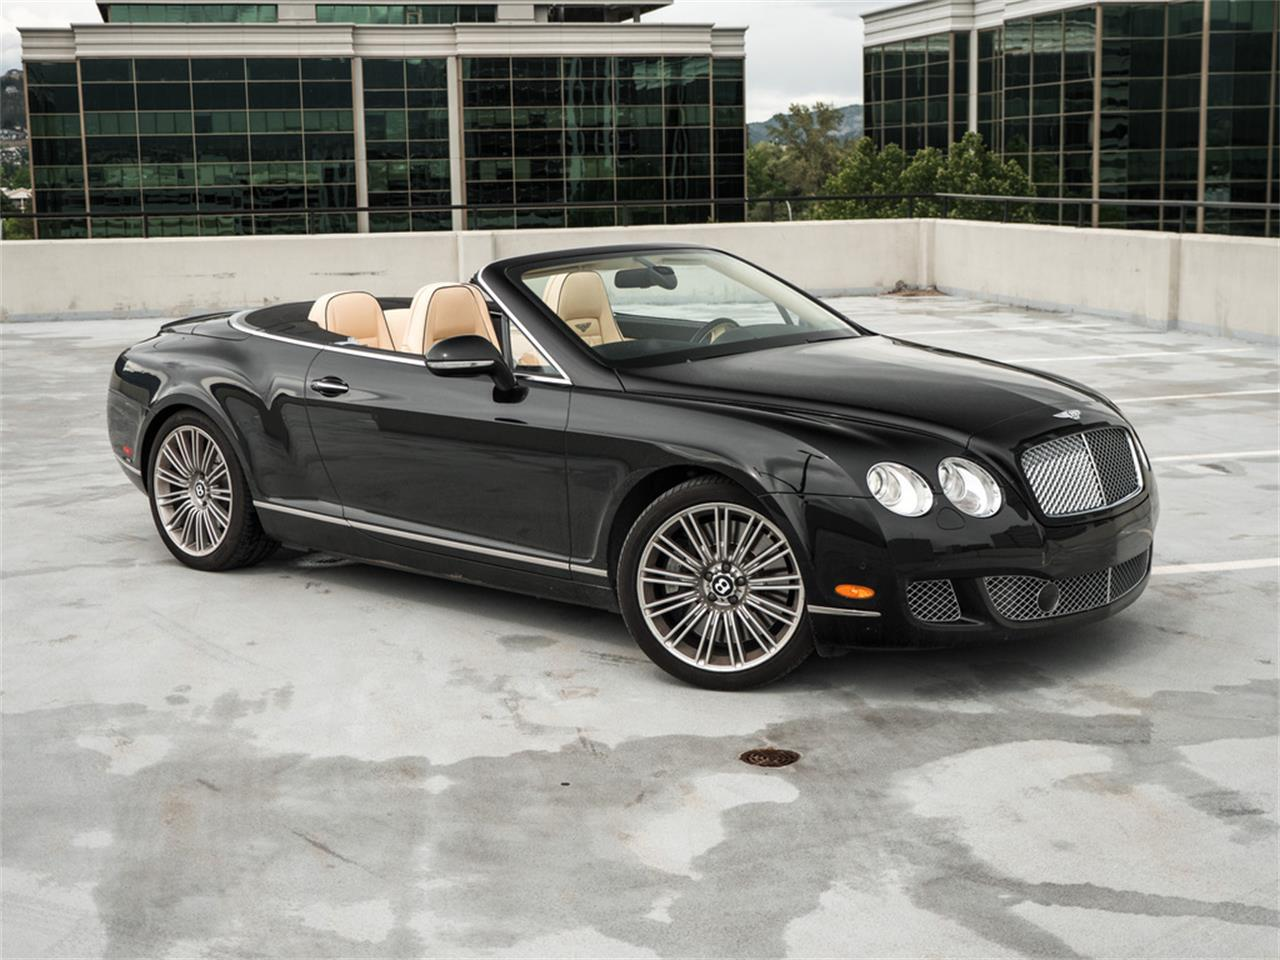 Large Picture of '11 Bentley Continental located in British Columbia - $91,819.00 Offered by August Motorcars - QA5D